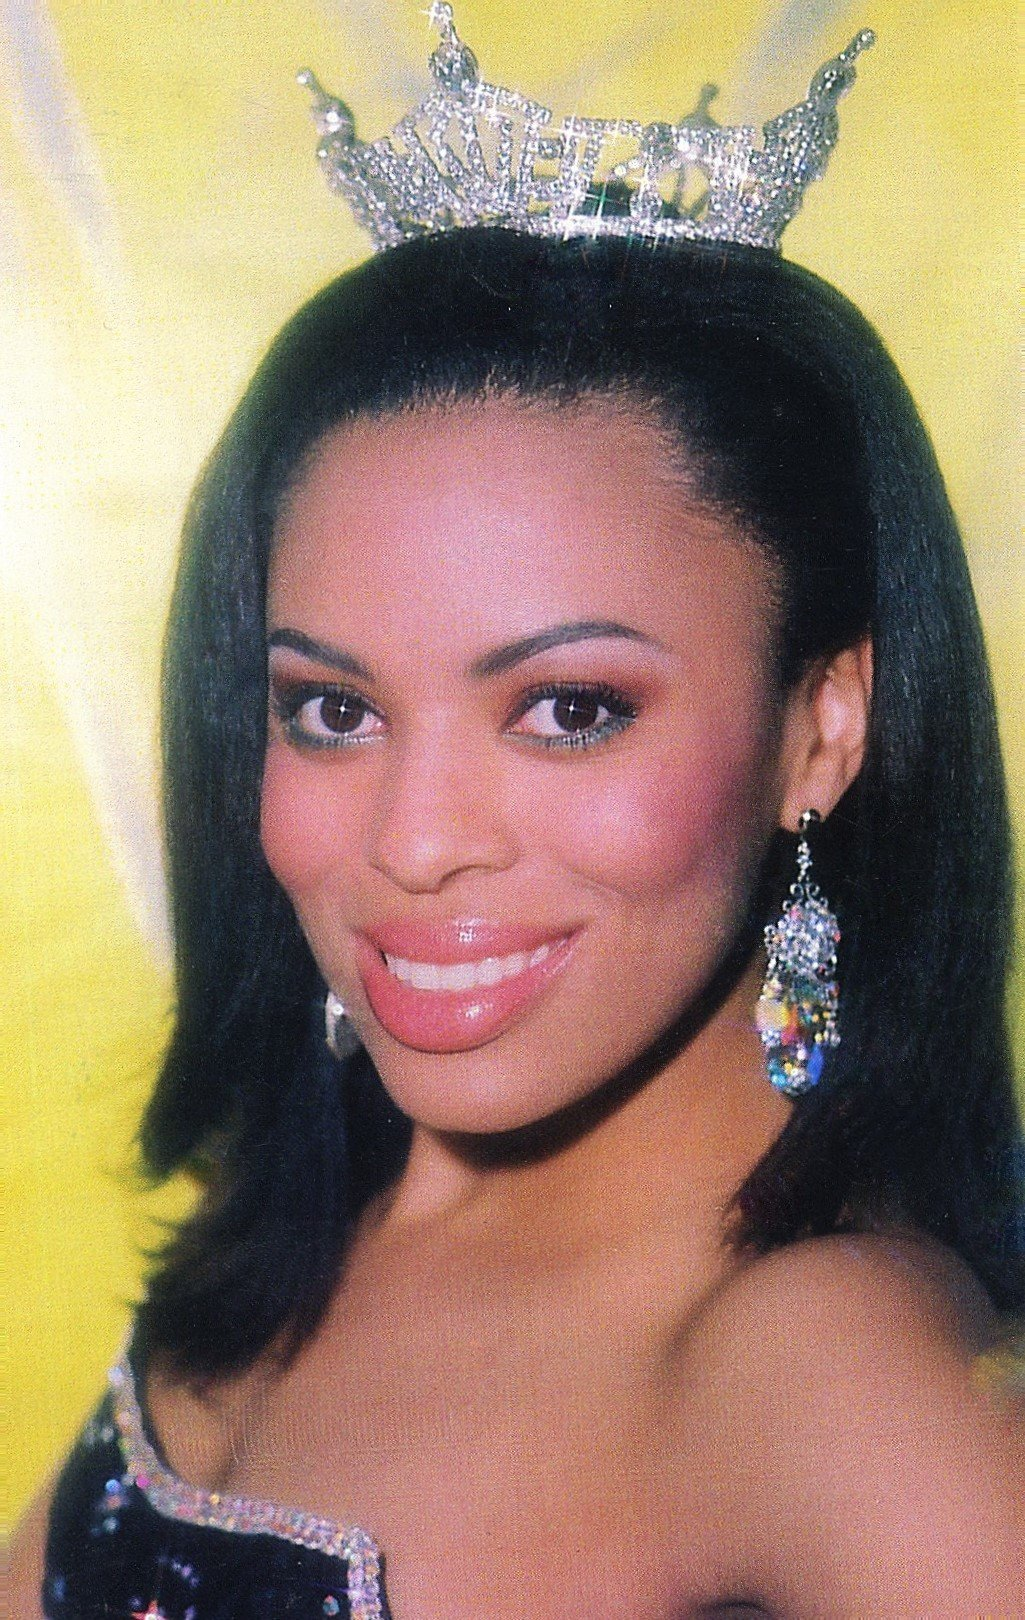 MISS SOUTH CAROLINA --  CRYSTAL GARRETT  She placed TOP 16 at MISS AMERICA and WINNER of REALITY CHECK.